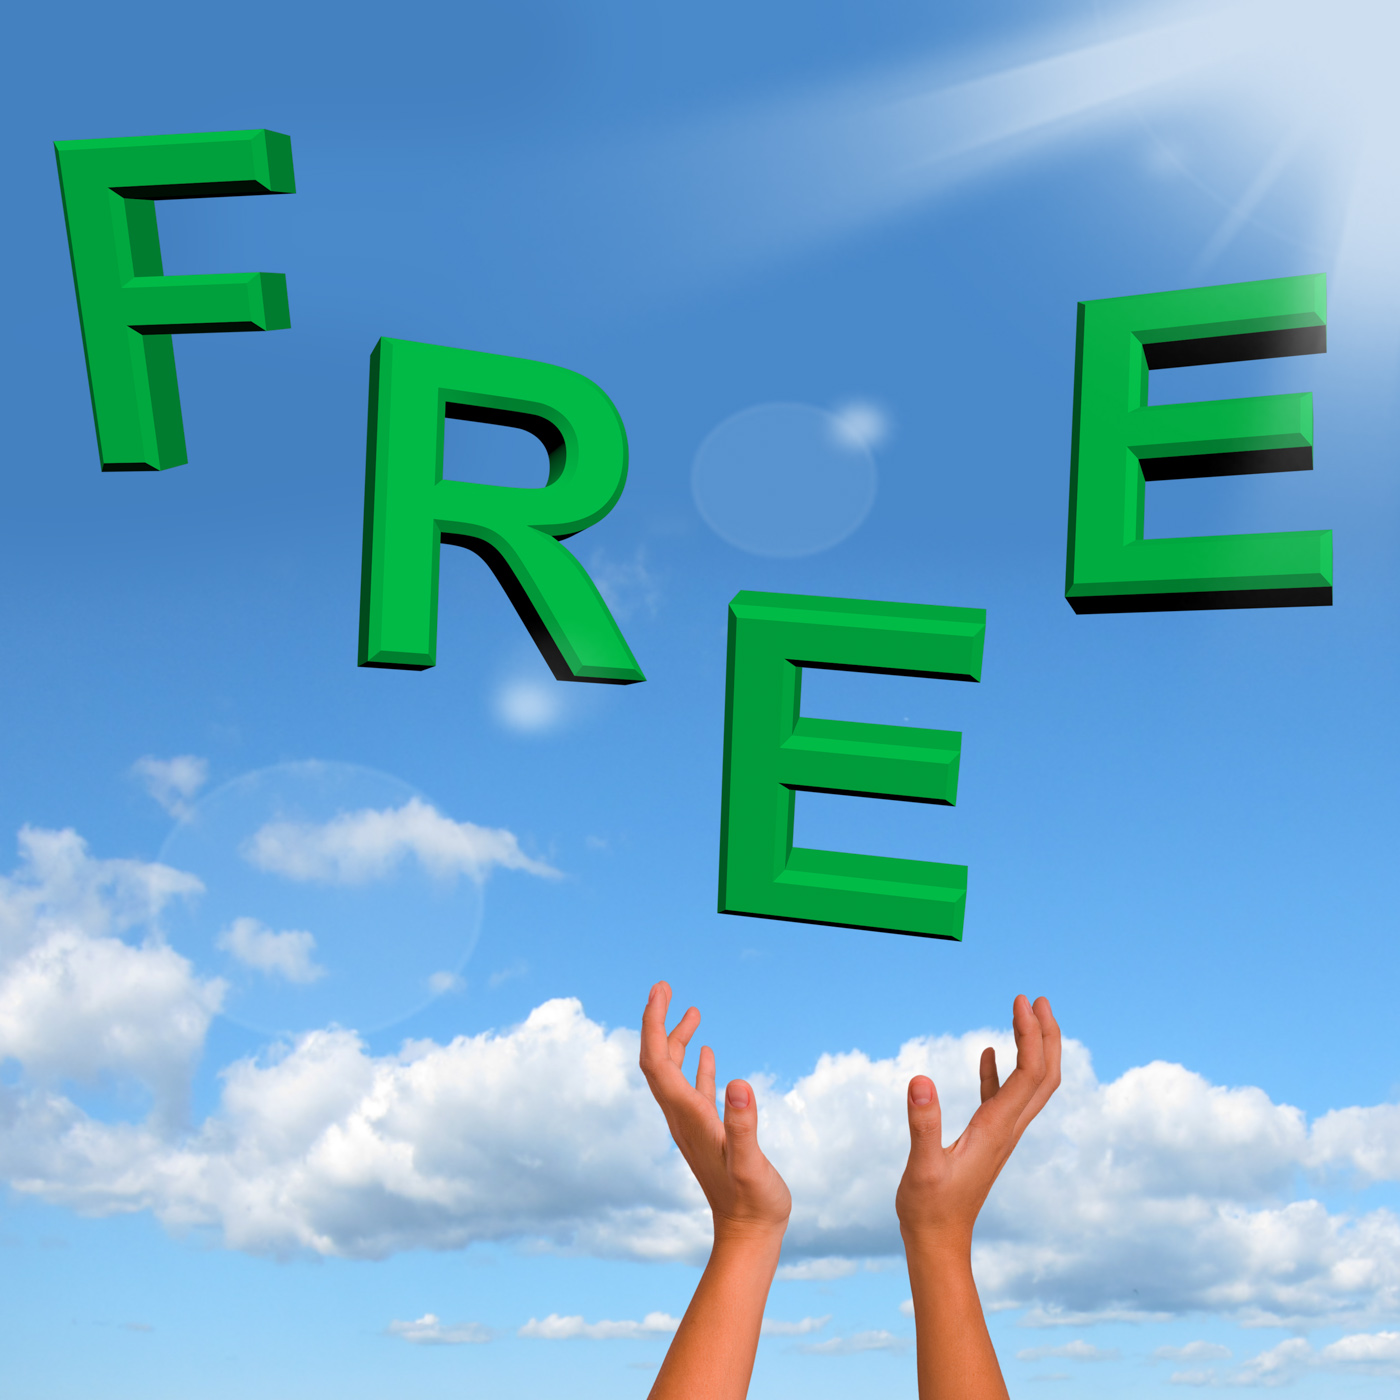 Free word falling in green showing freebies and promotions photo